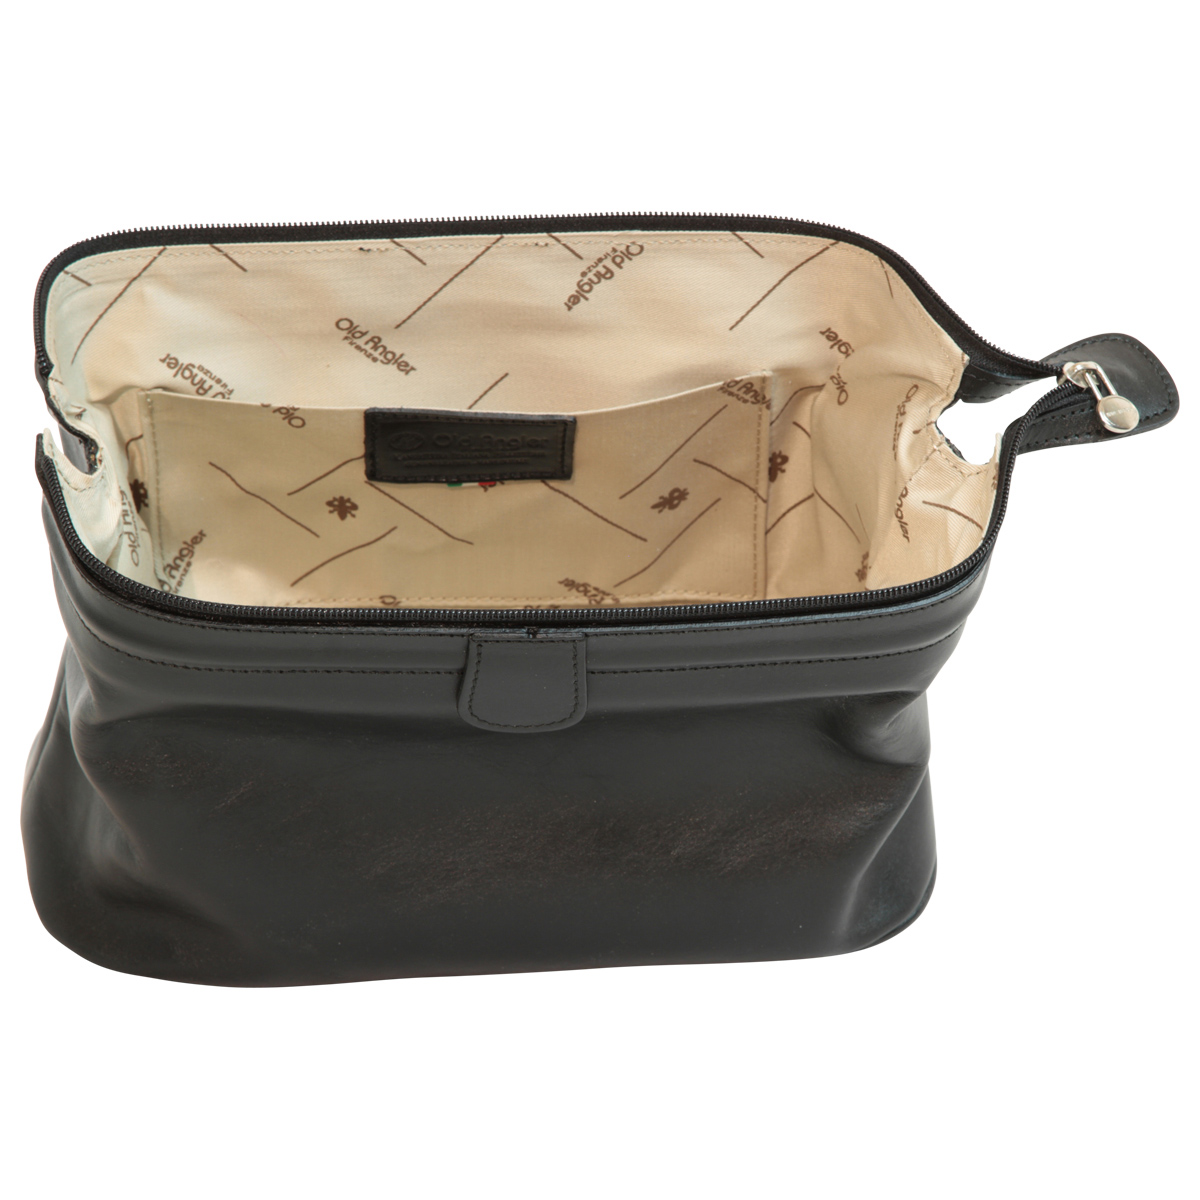 Leather Beauty Case - Black | 065489NE UK | Old Angler Firenze